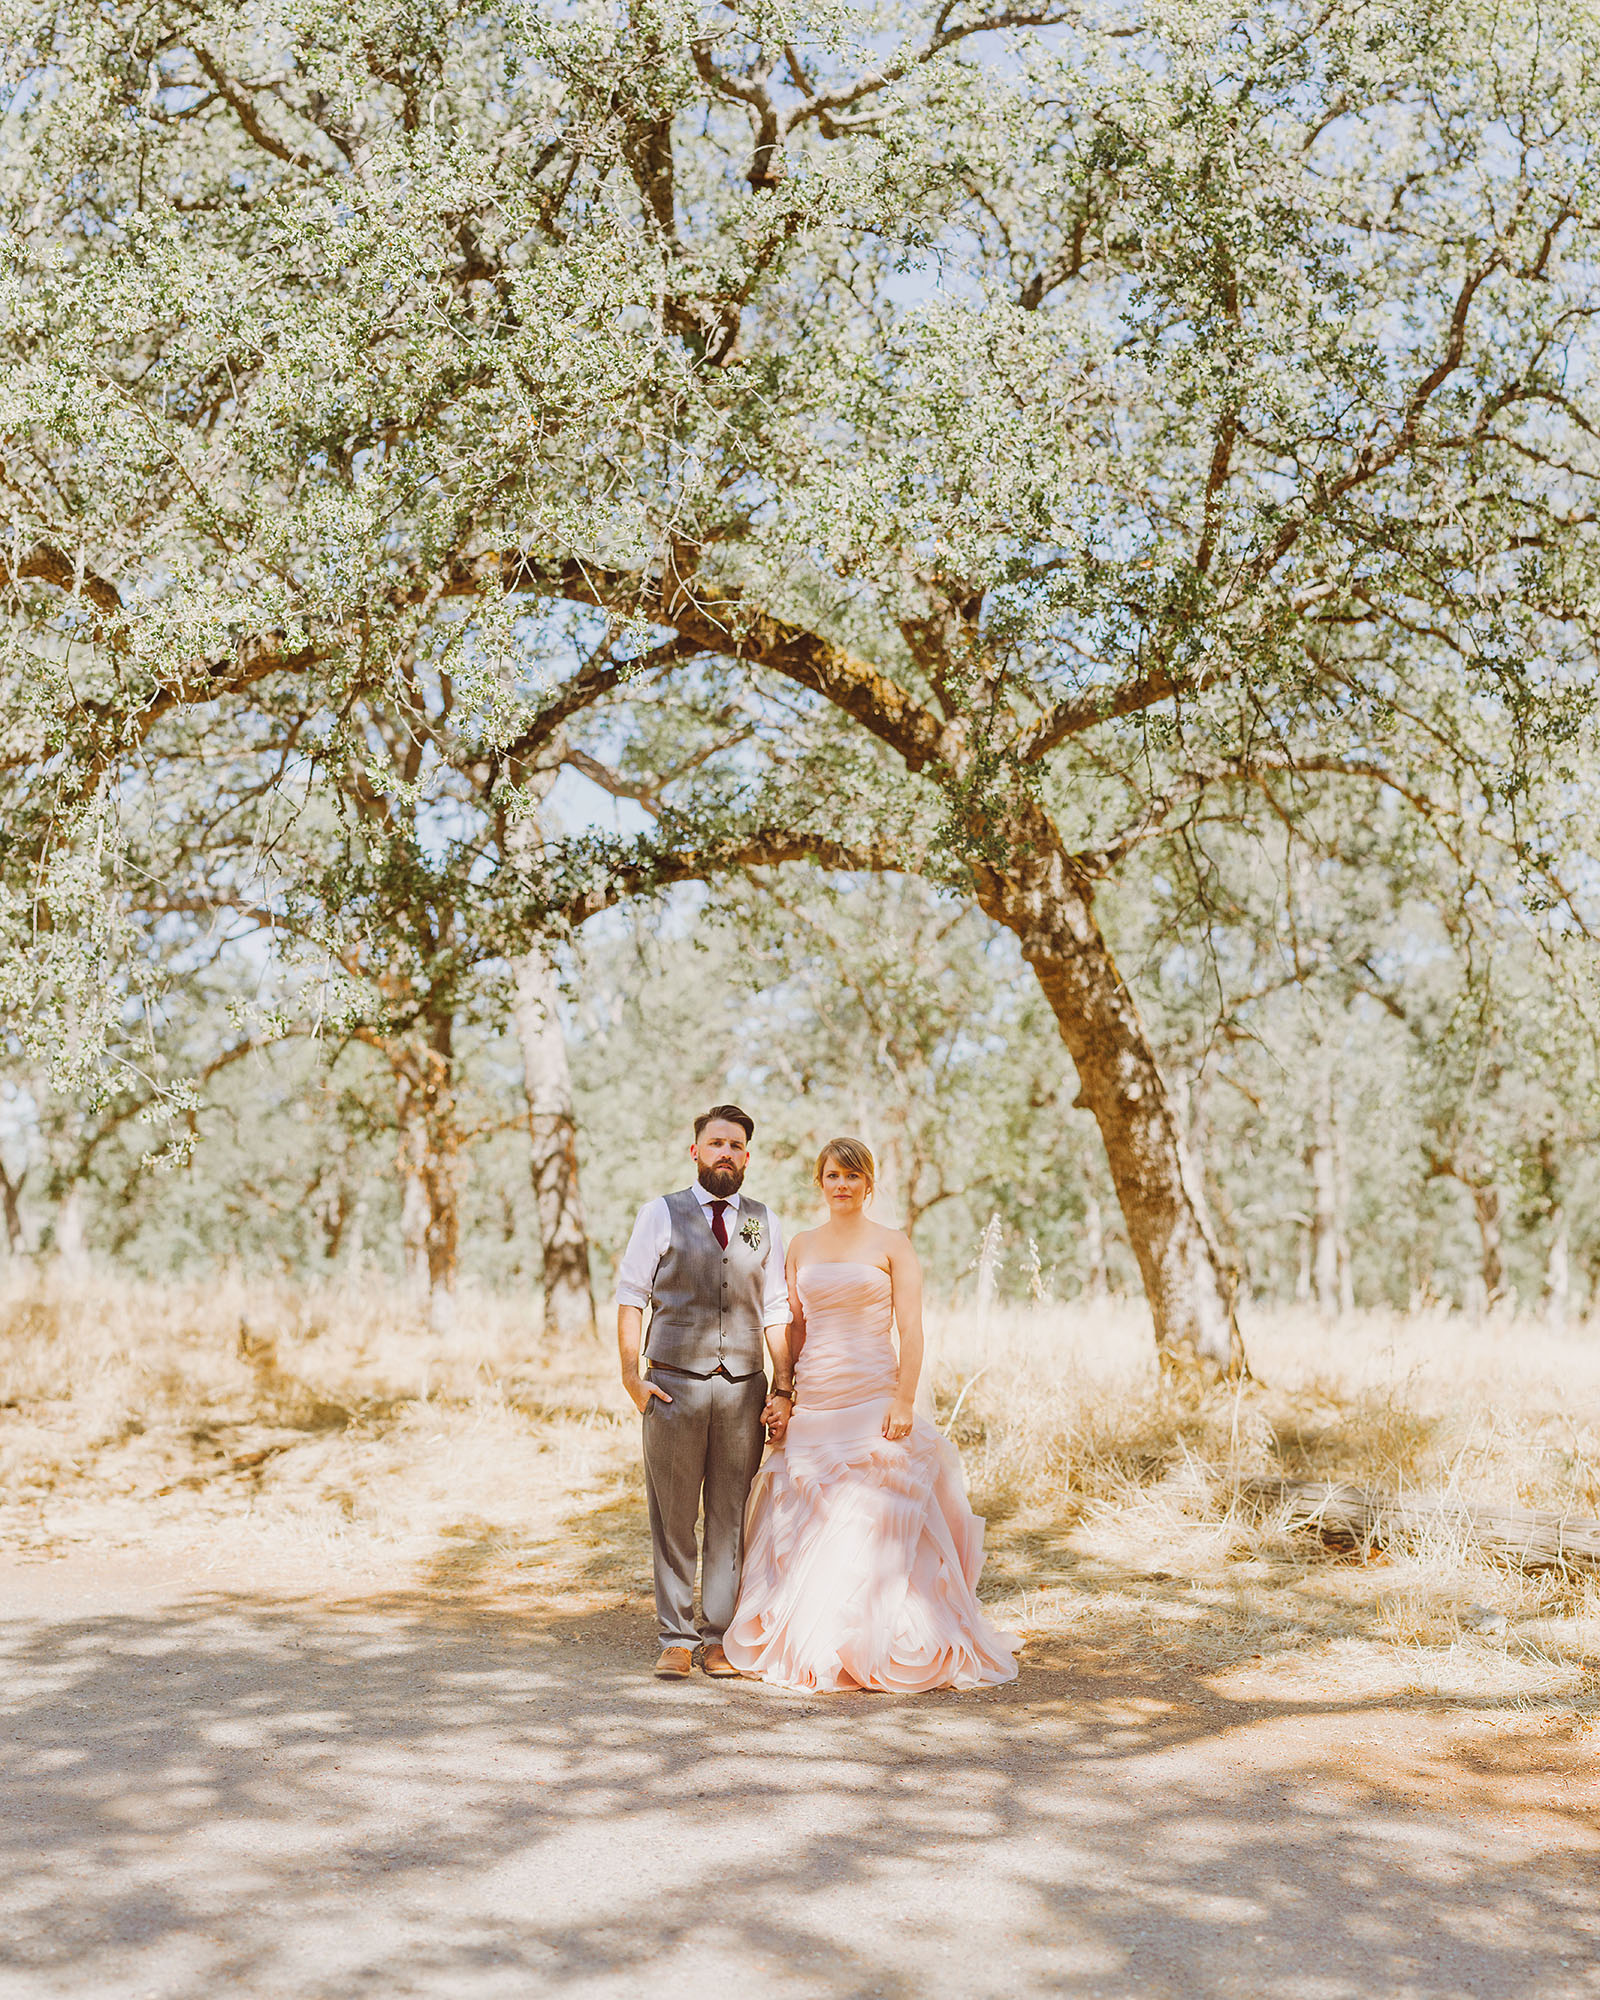 Brenizer Method of Bride and Groom under oak trees in Bidwell Park | Backyard Chico California Wedding